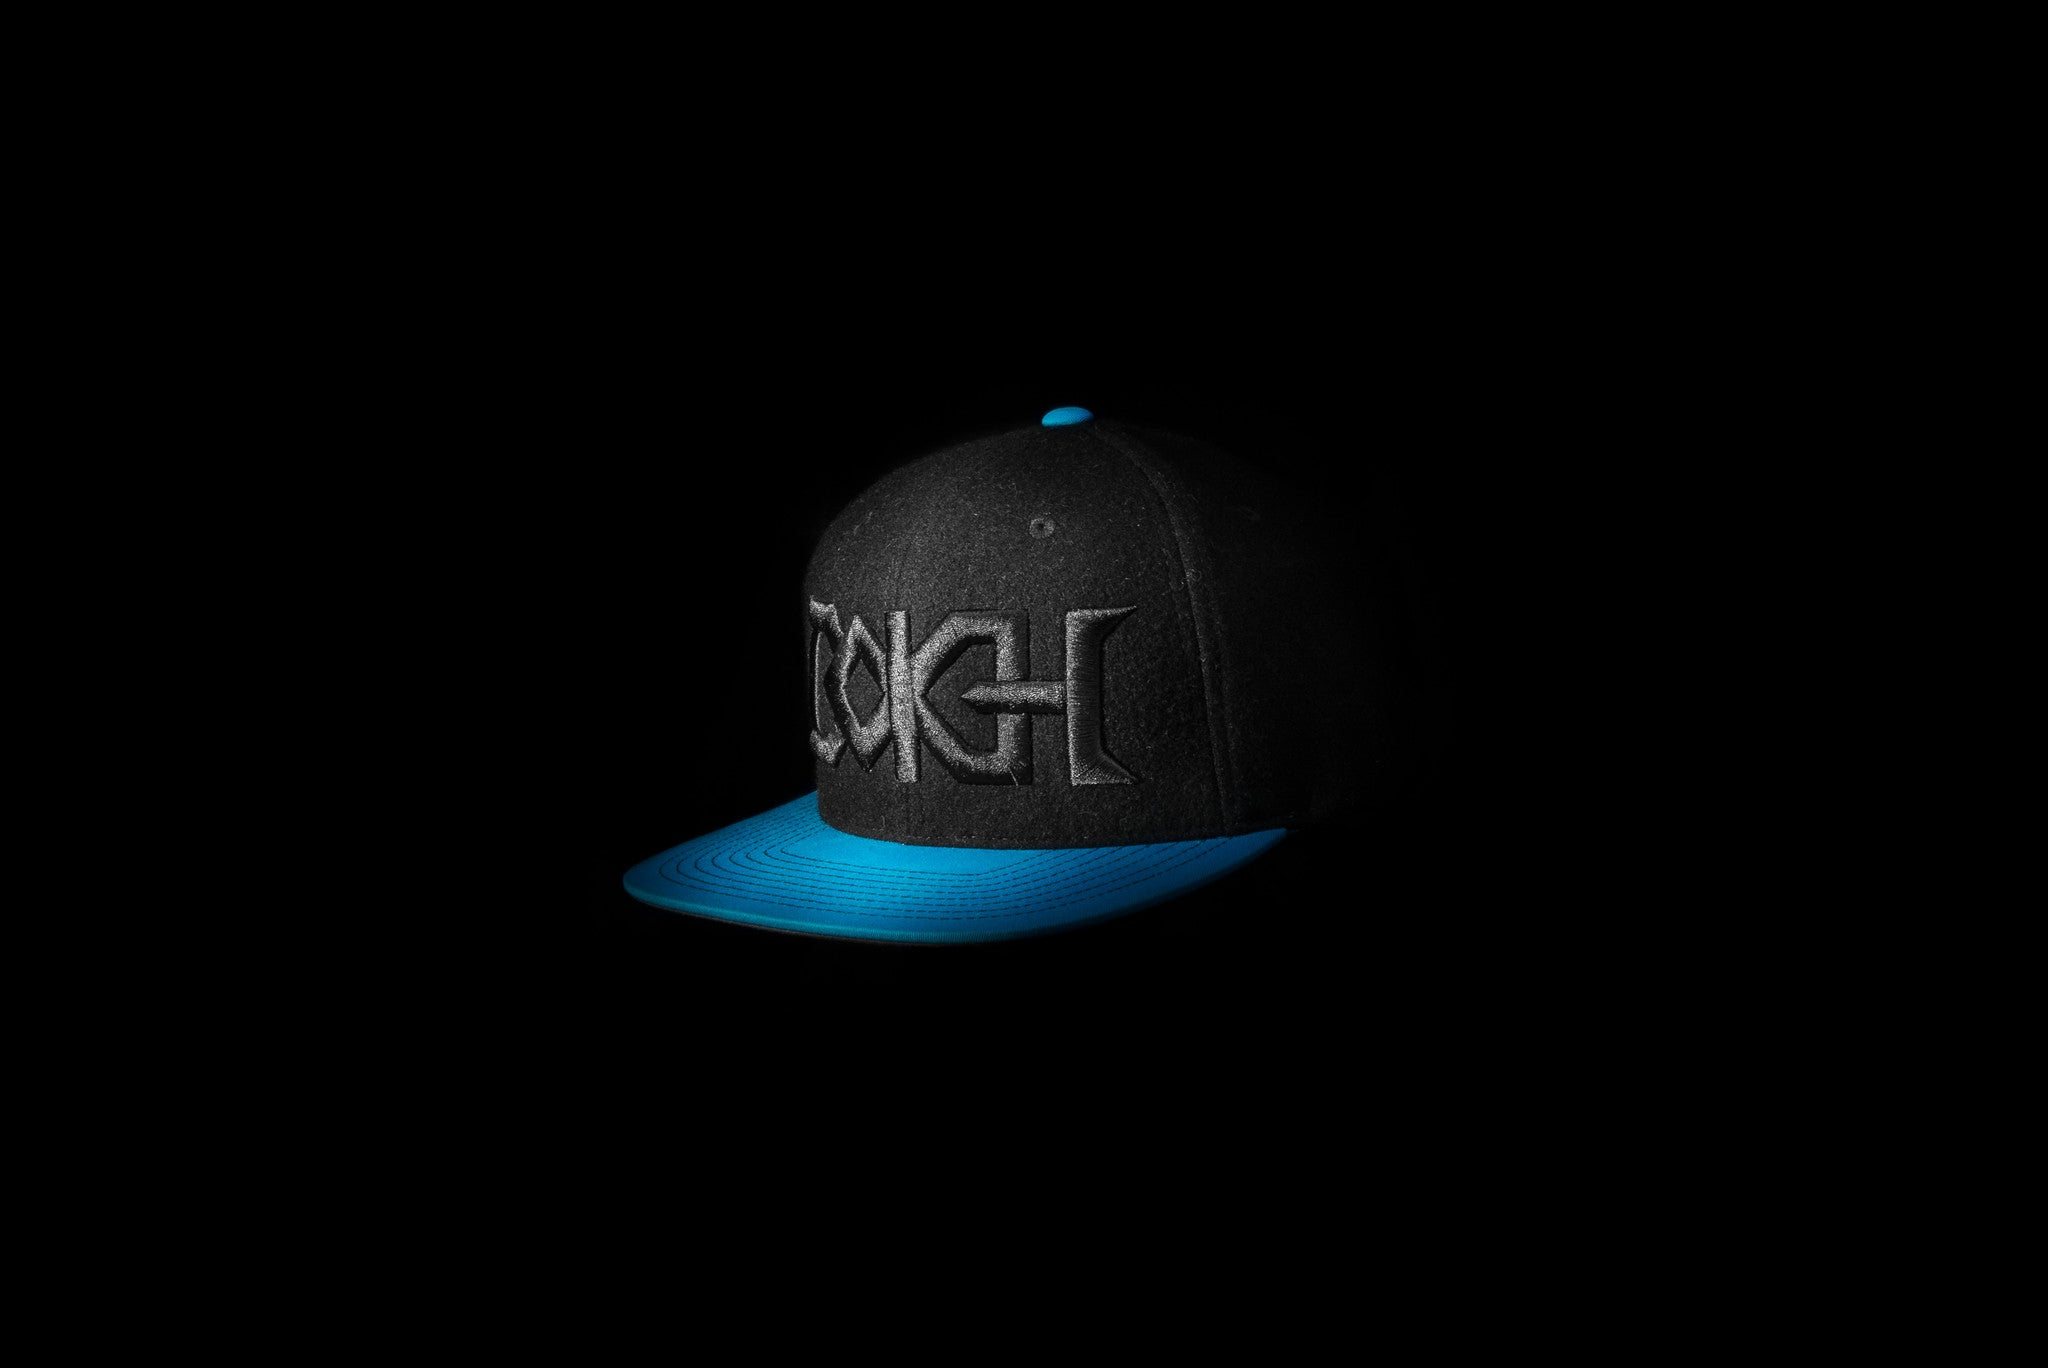 Bokeh = Metal 2 (Black & Blue)